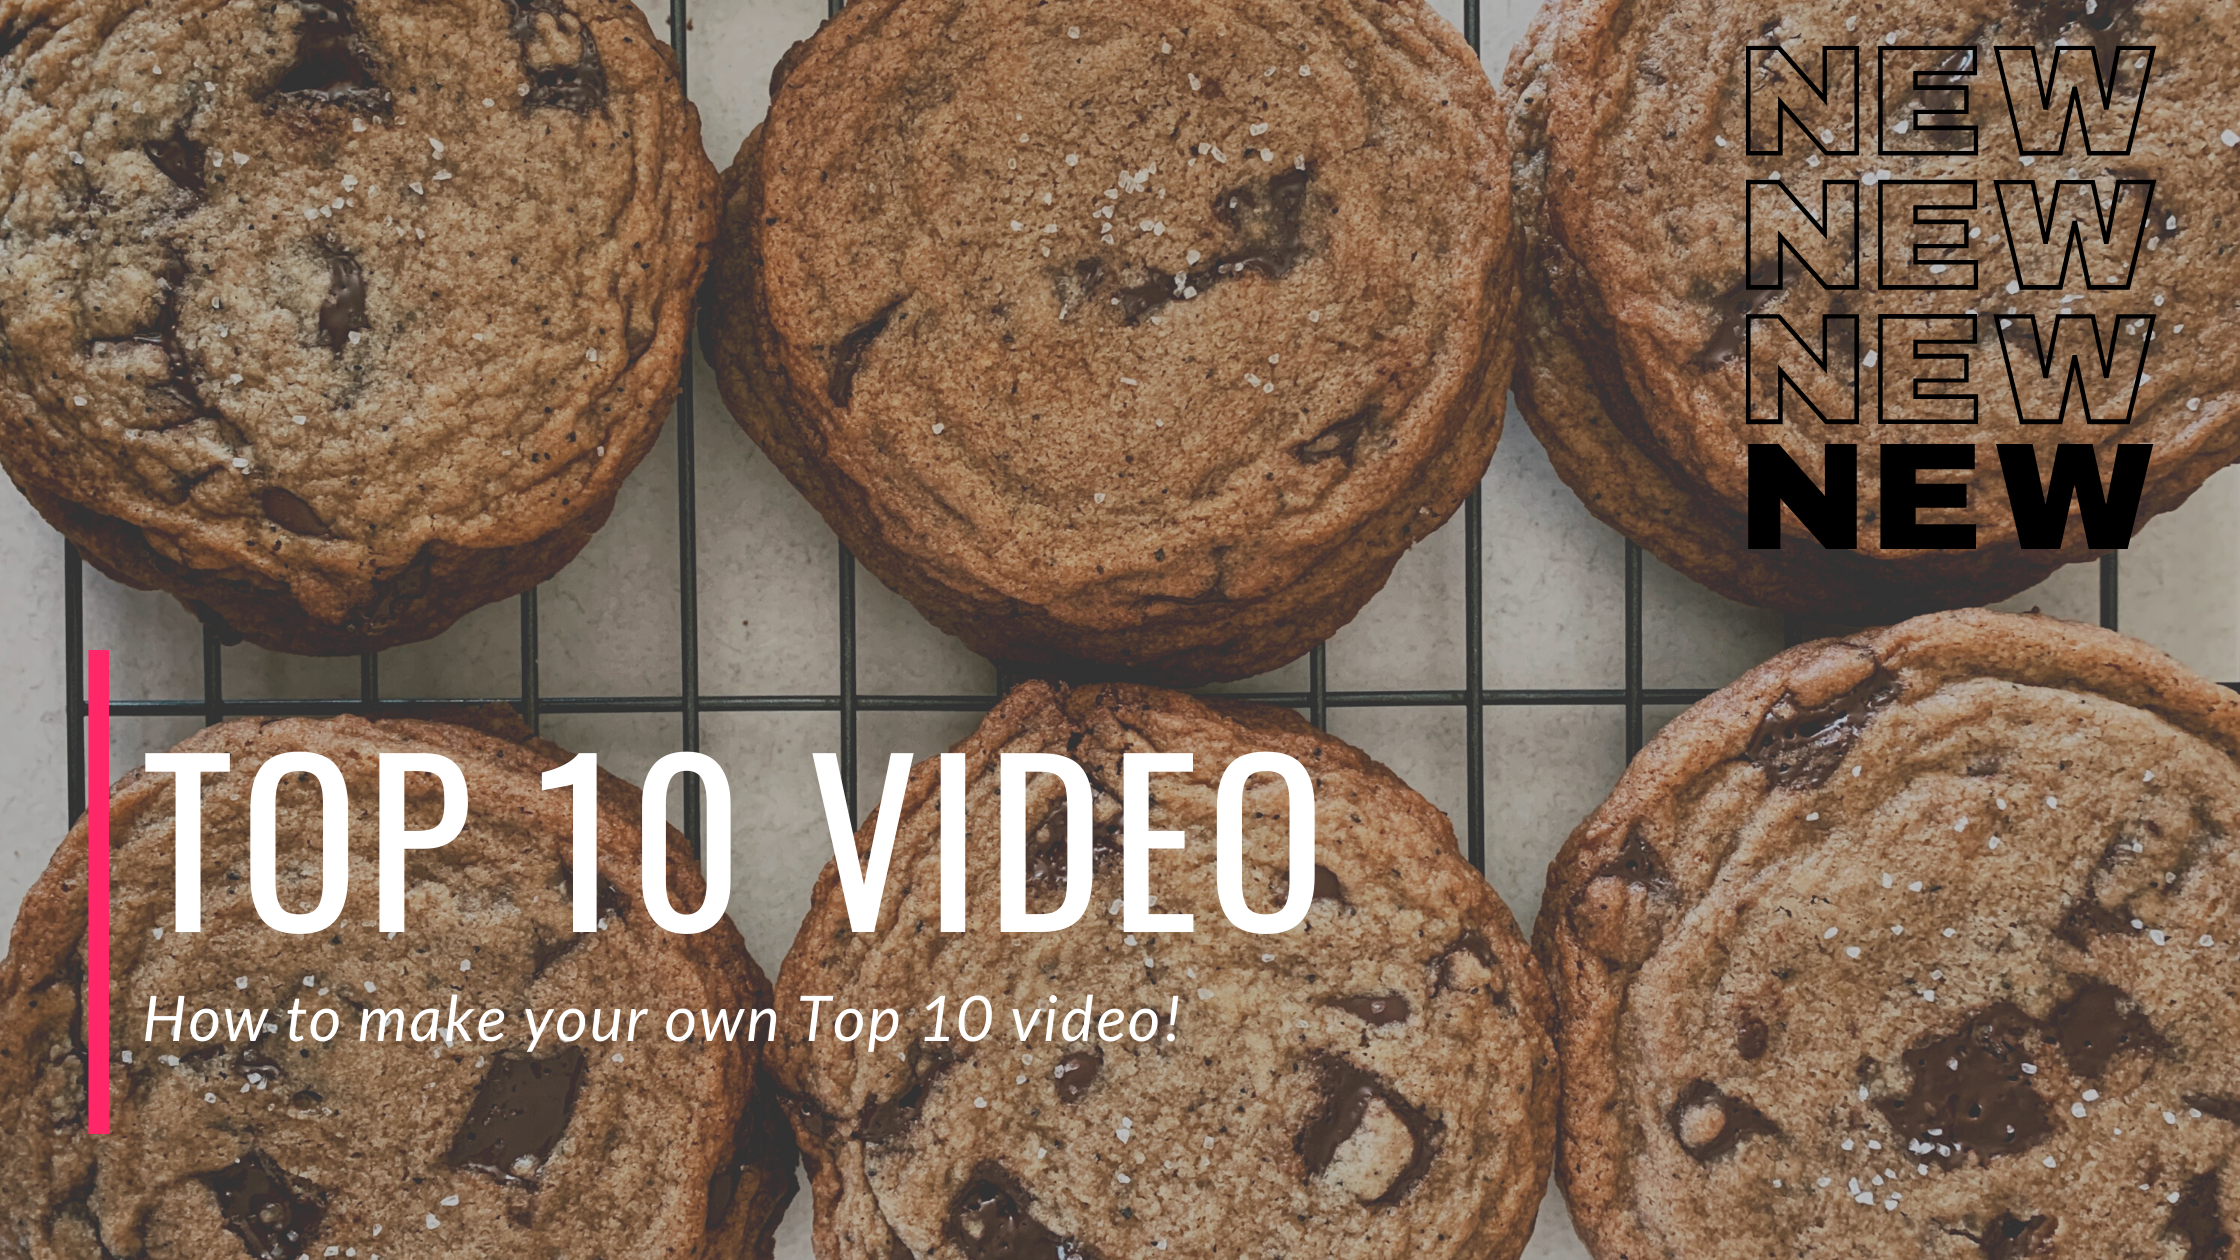 How To Make a Top 10 Video on YouTube